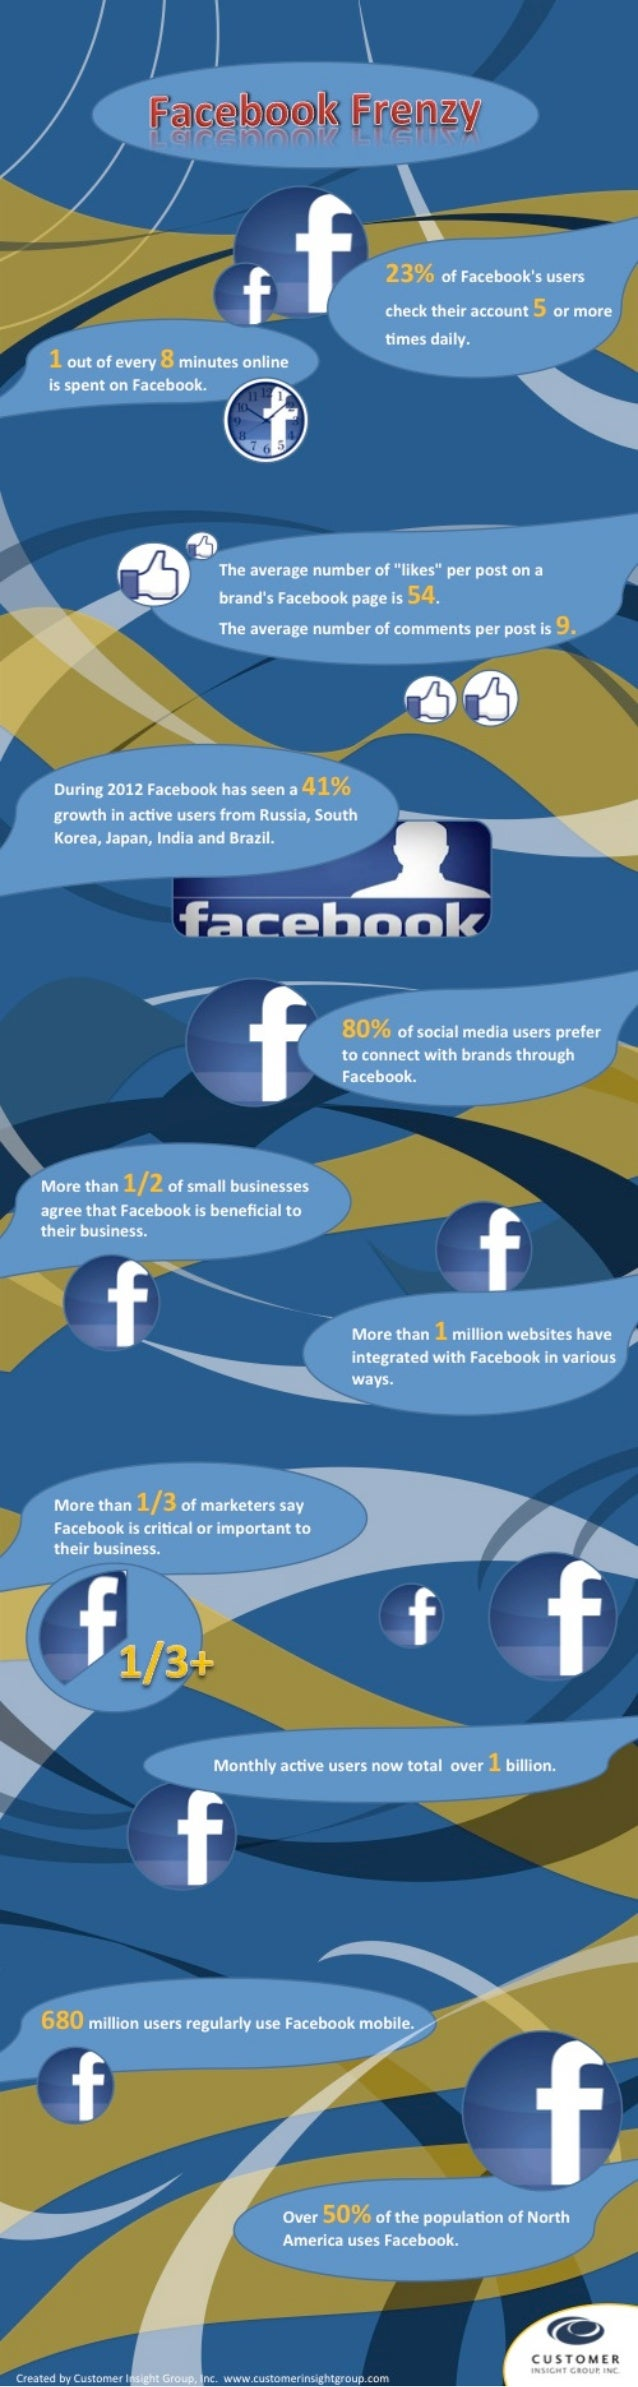 Facebook Frenzy (Infographic)